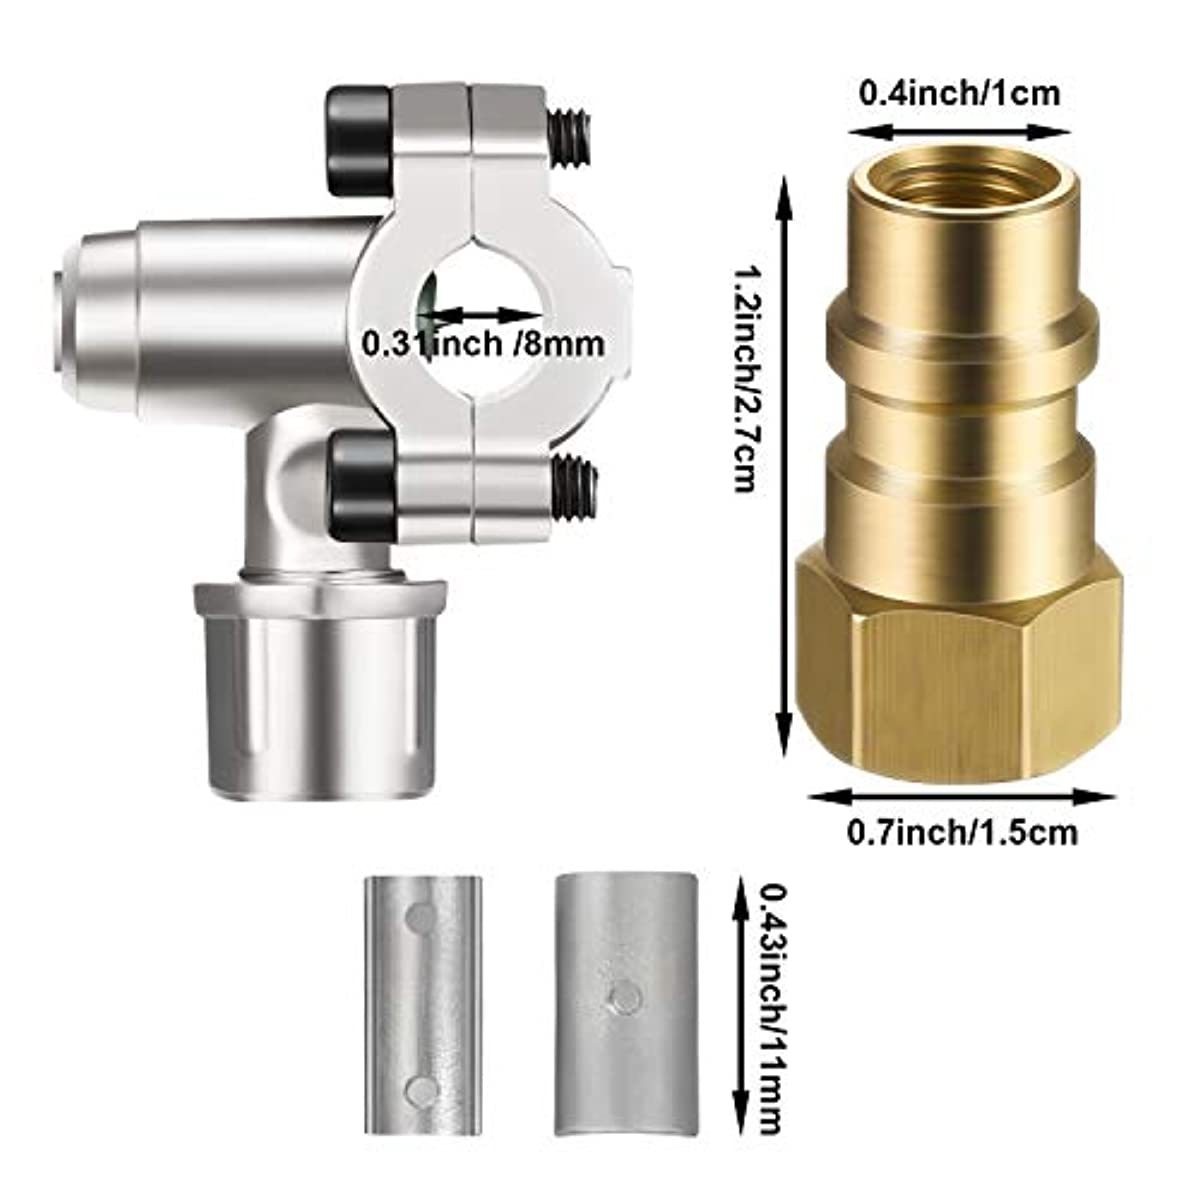 A/C Retrofit Valve with Dust Cap Converts R12 to R134a Fit 7/16 Inch Low Side Port BPV-31 Bullet Piercing Tap Valve Replace for AP, BPV31D, GPV14, GPV31, GPV38, GPV56, MPV31